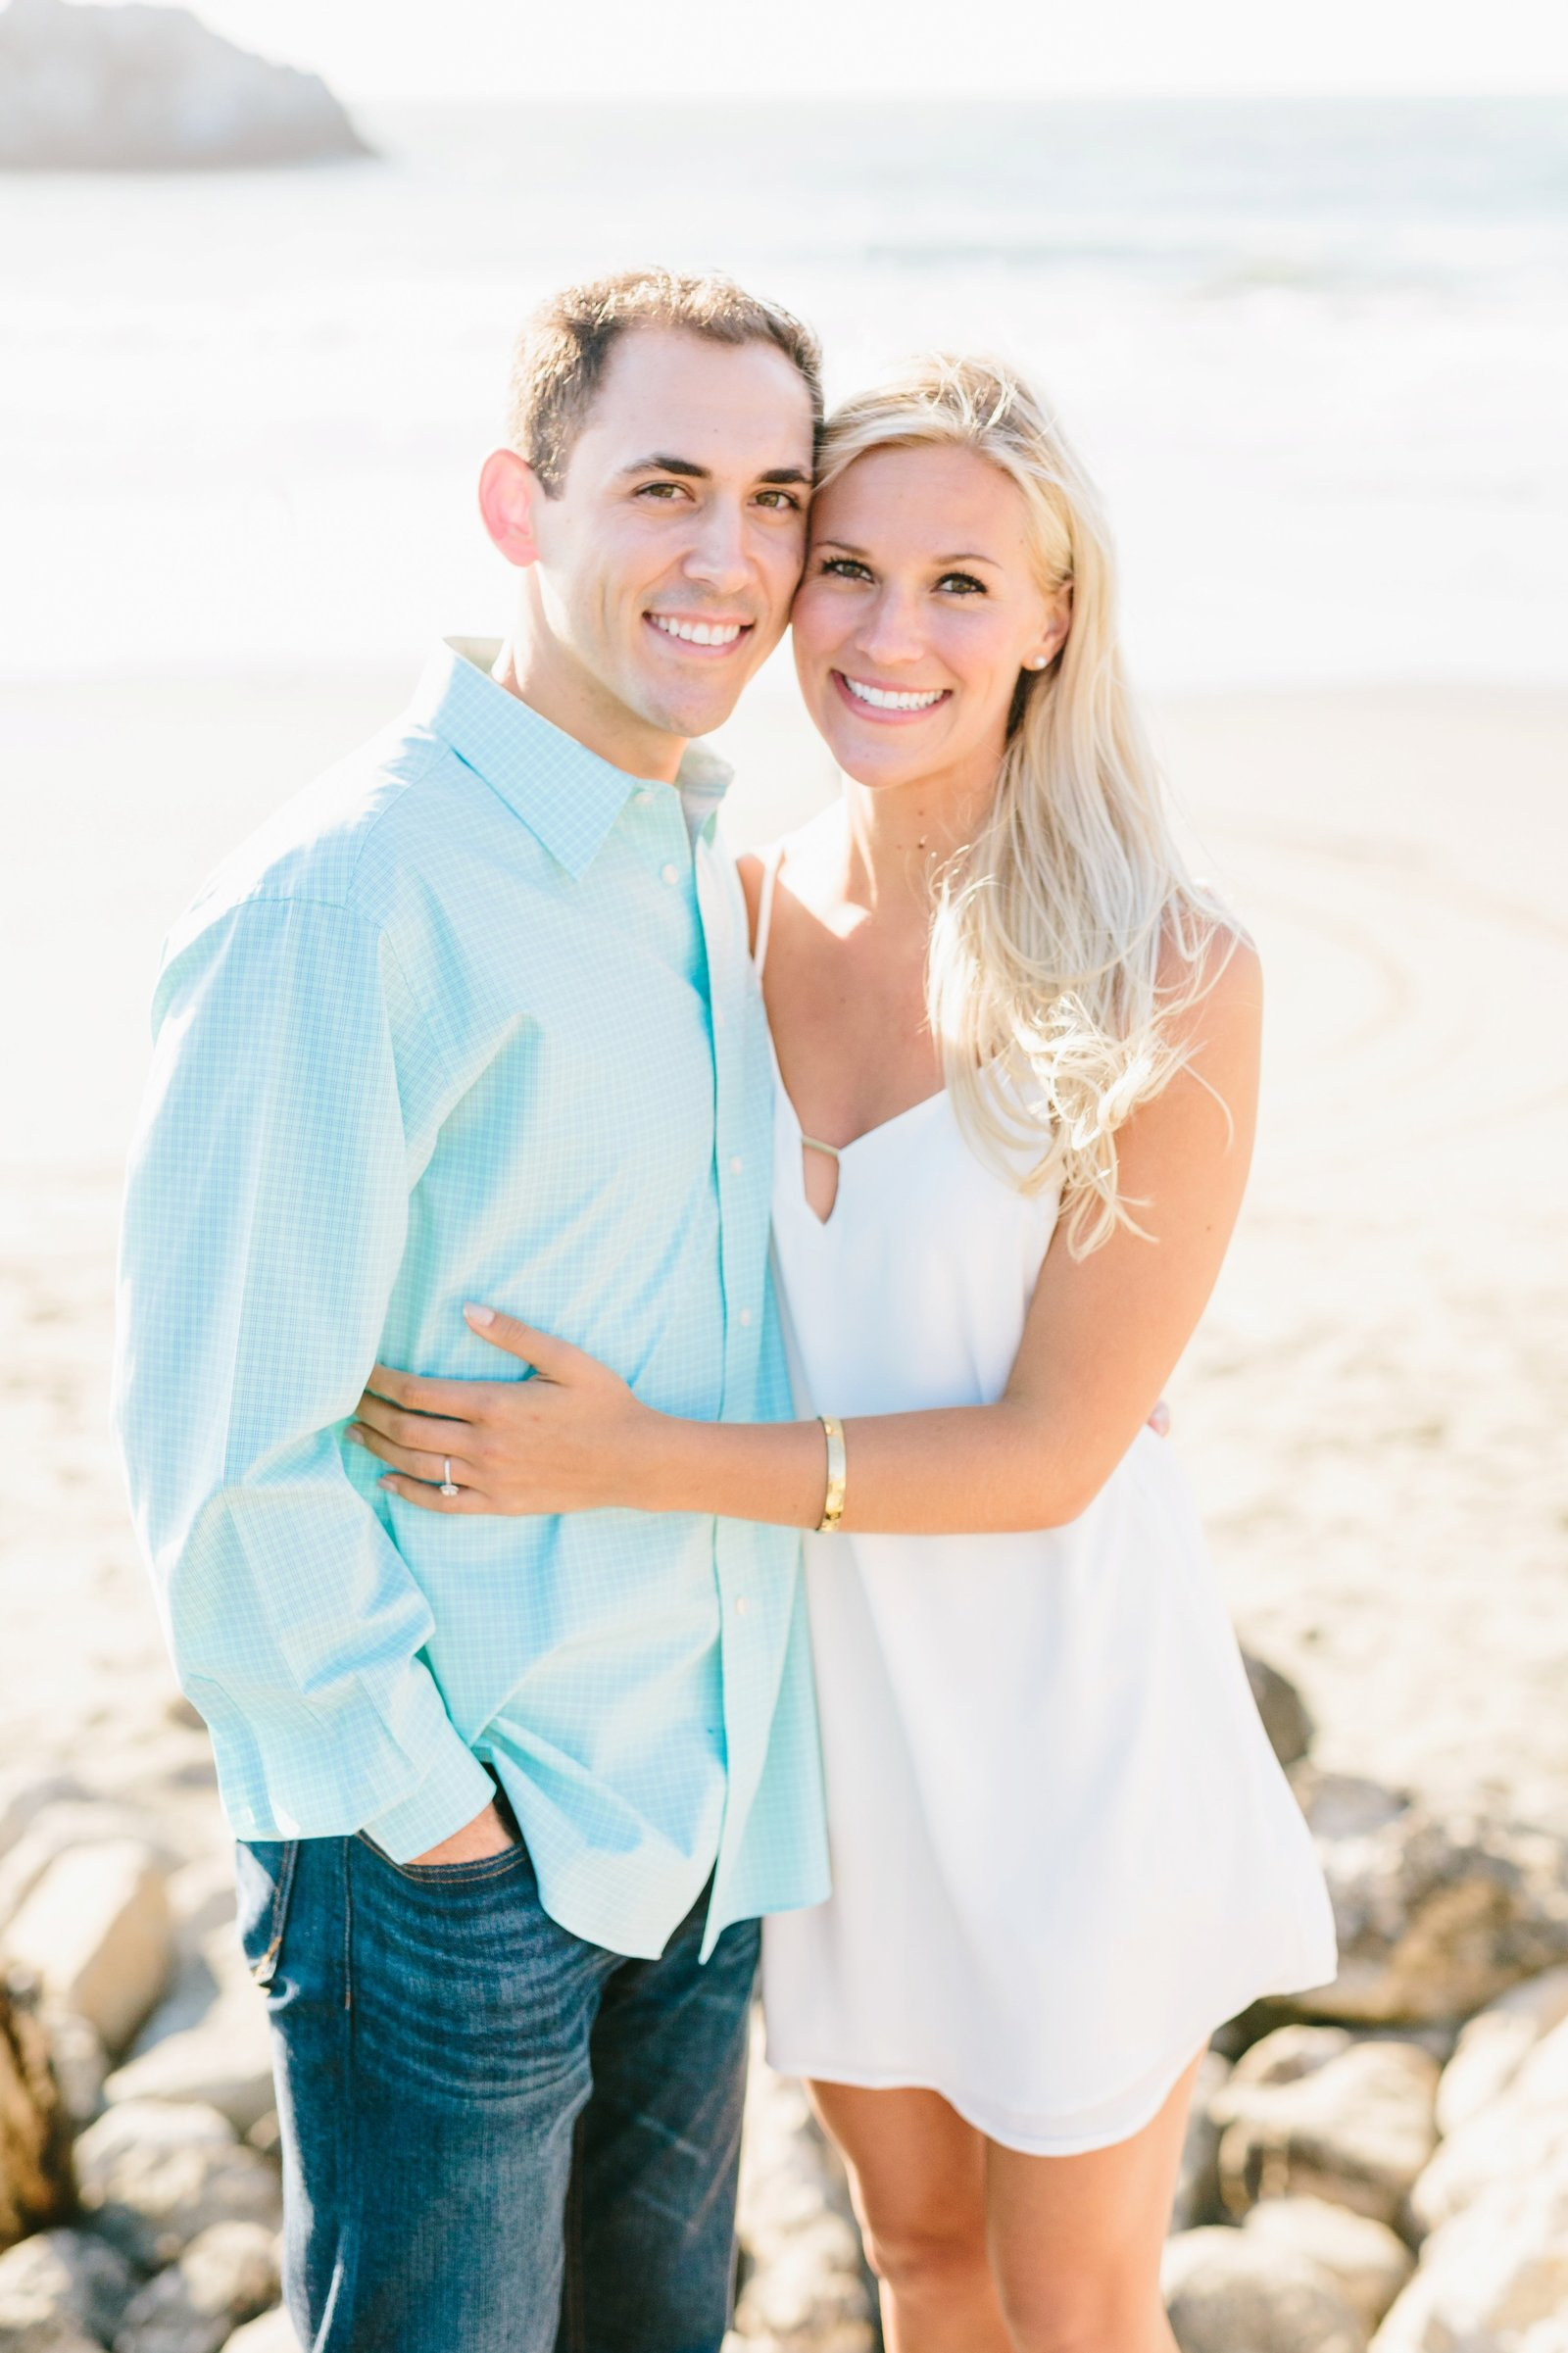 Engagement Photos-Jodee Debes Photography-044